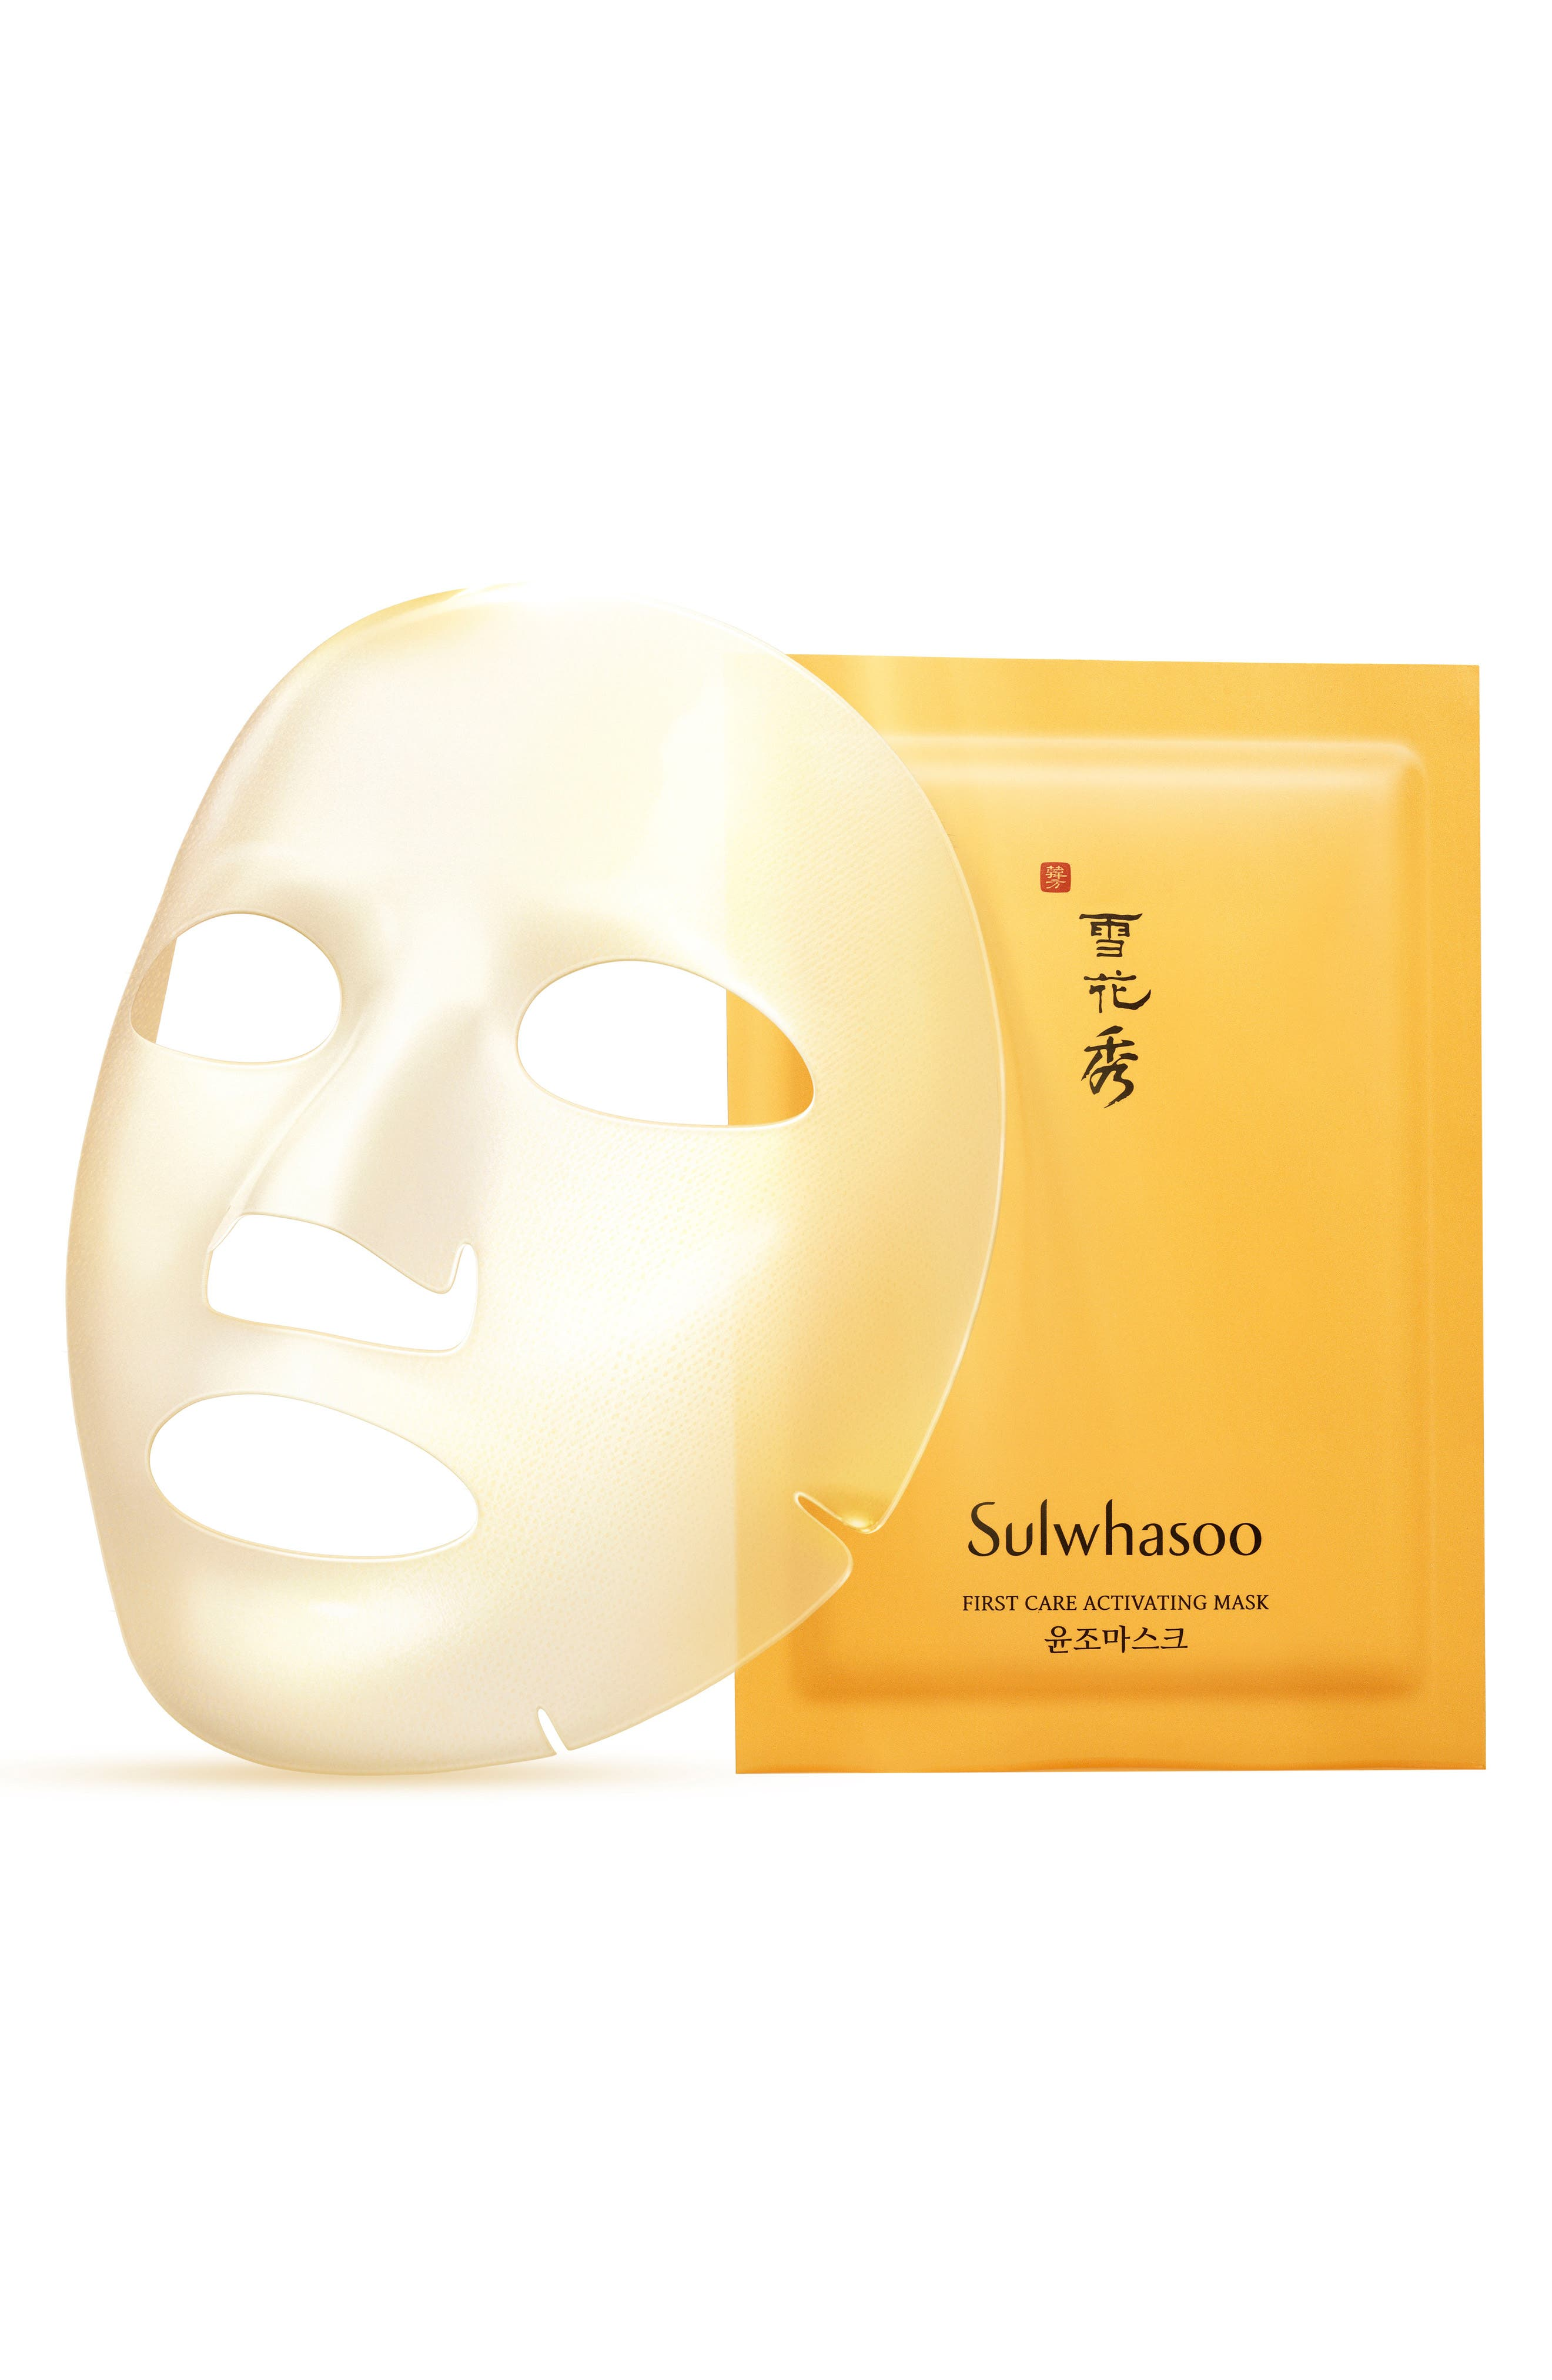 Alternate Image 1 Selected - Sulwhasoo First Care Activating Sheet Mask